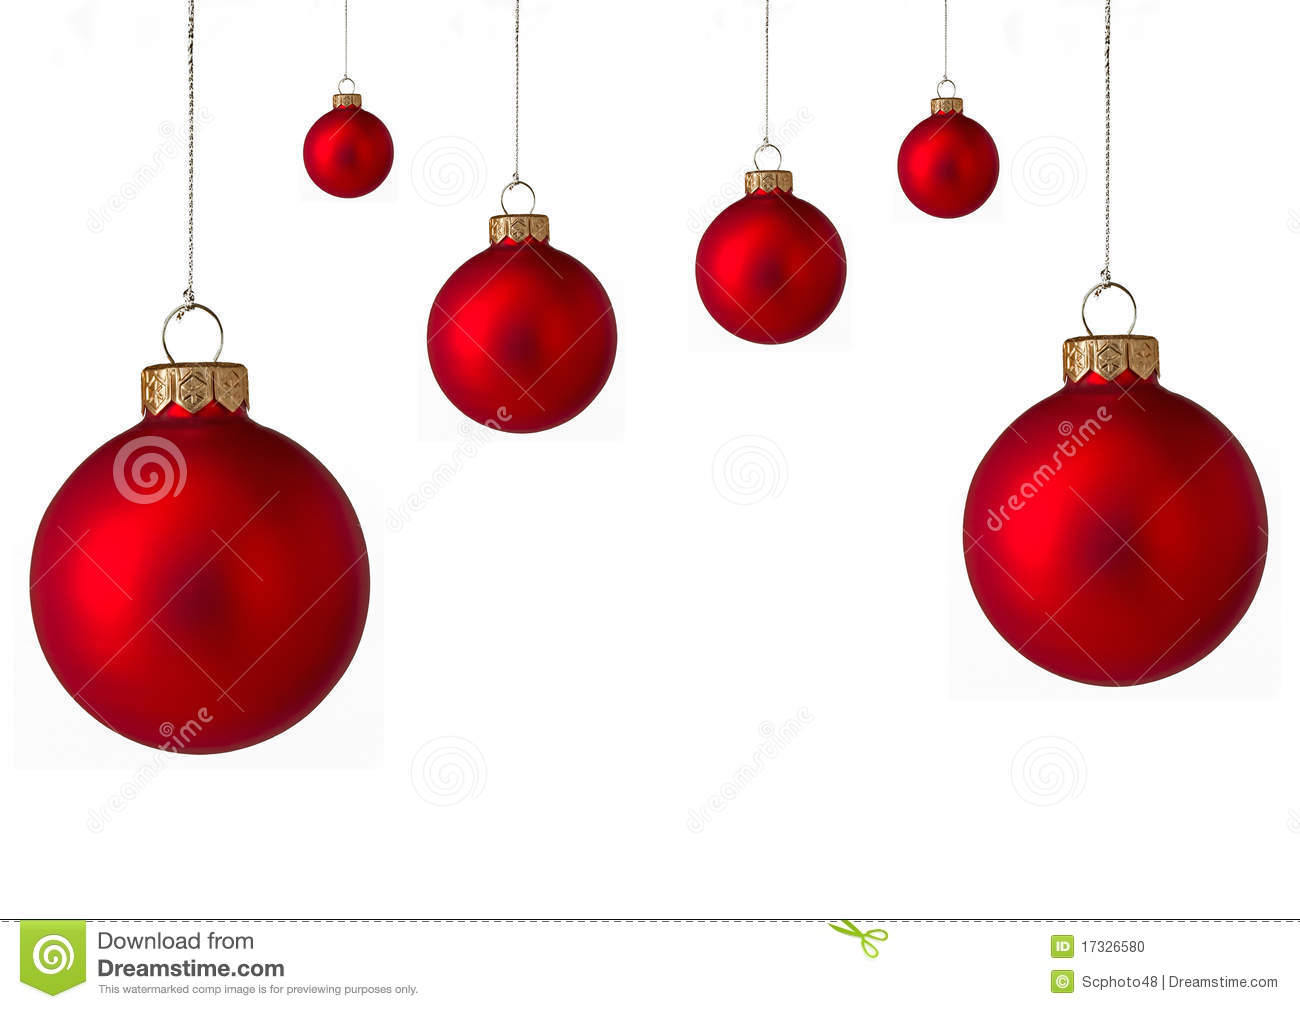 Several Red Christmas Baubles Stock Photo - Image: 17326580